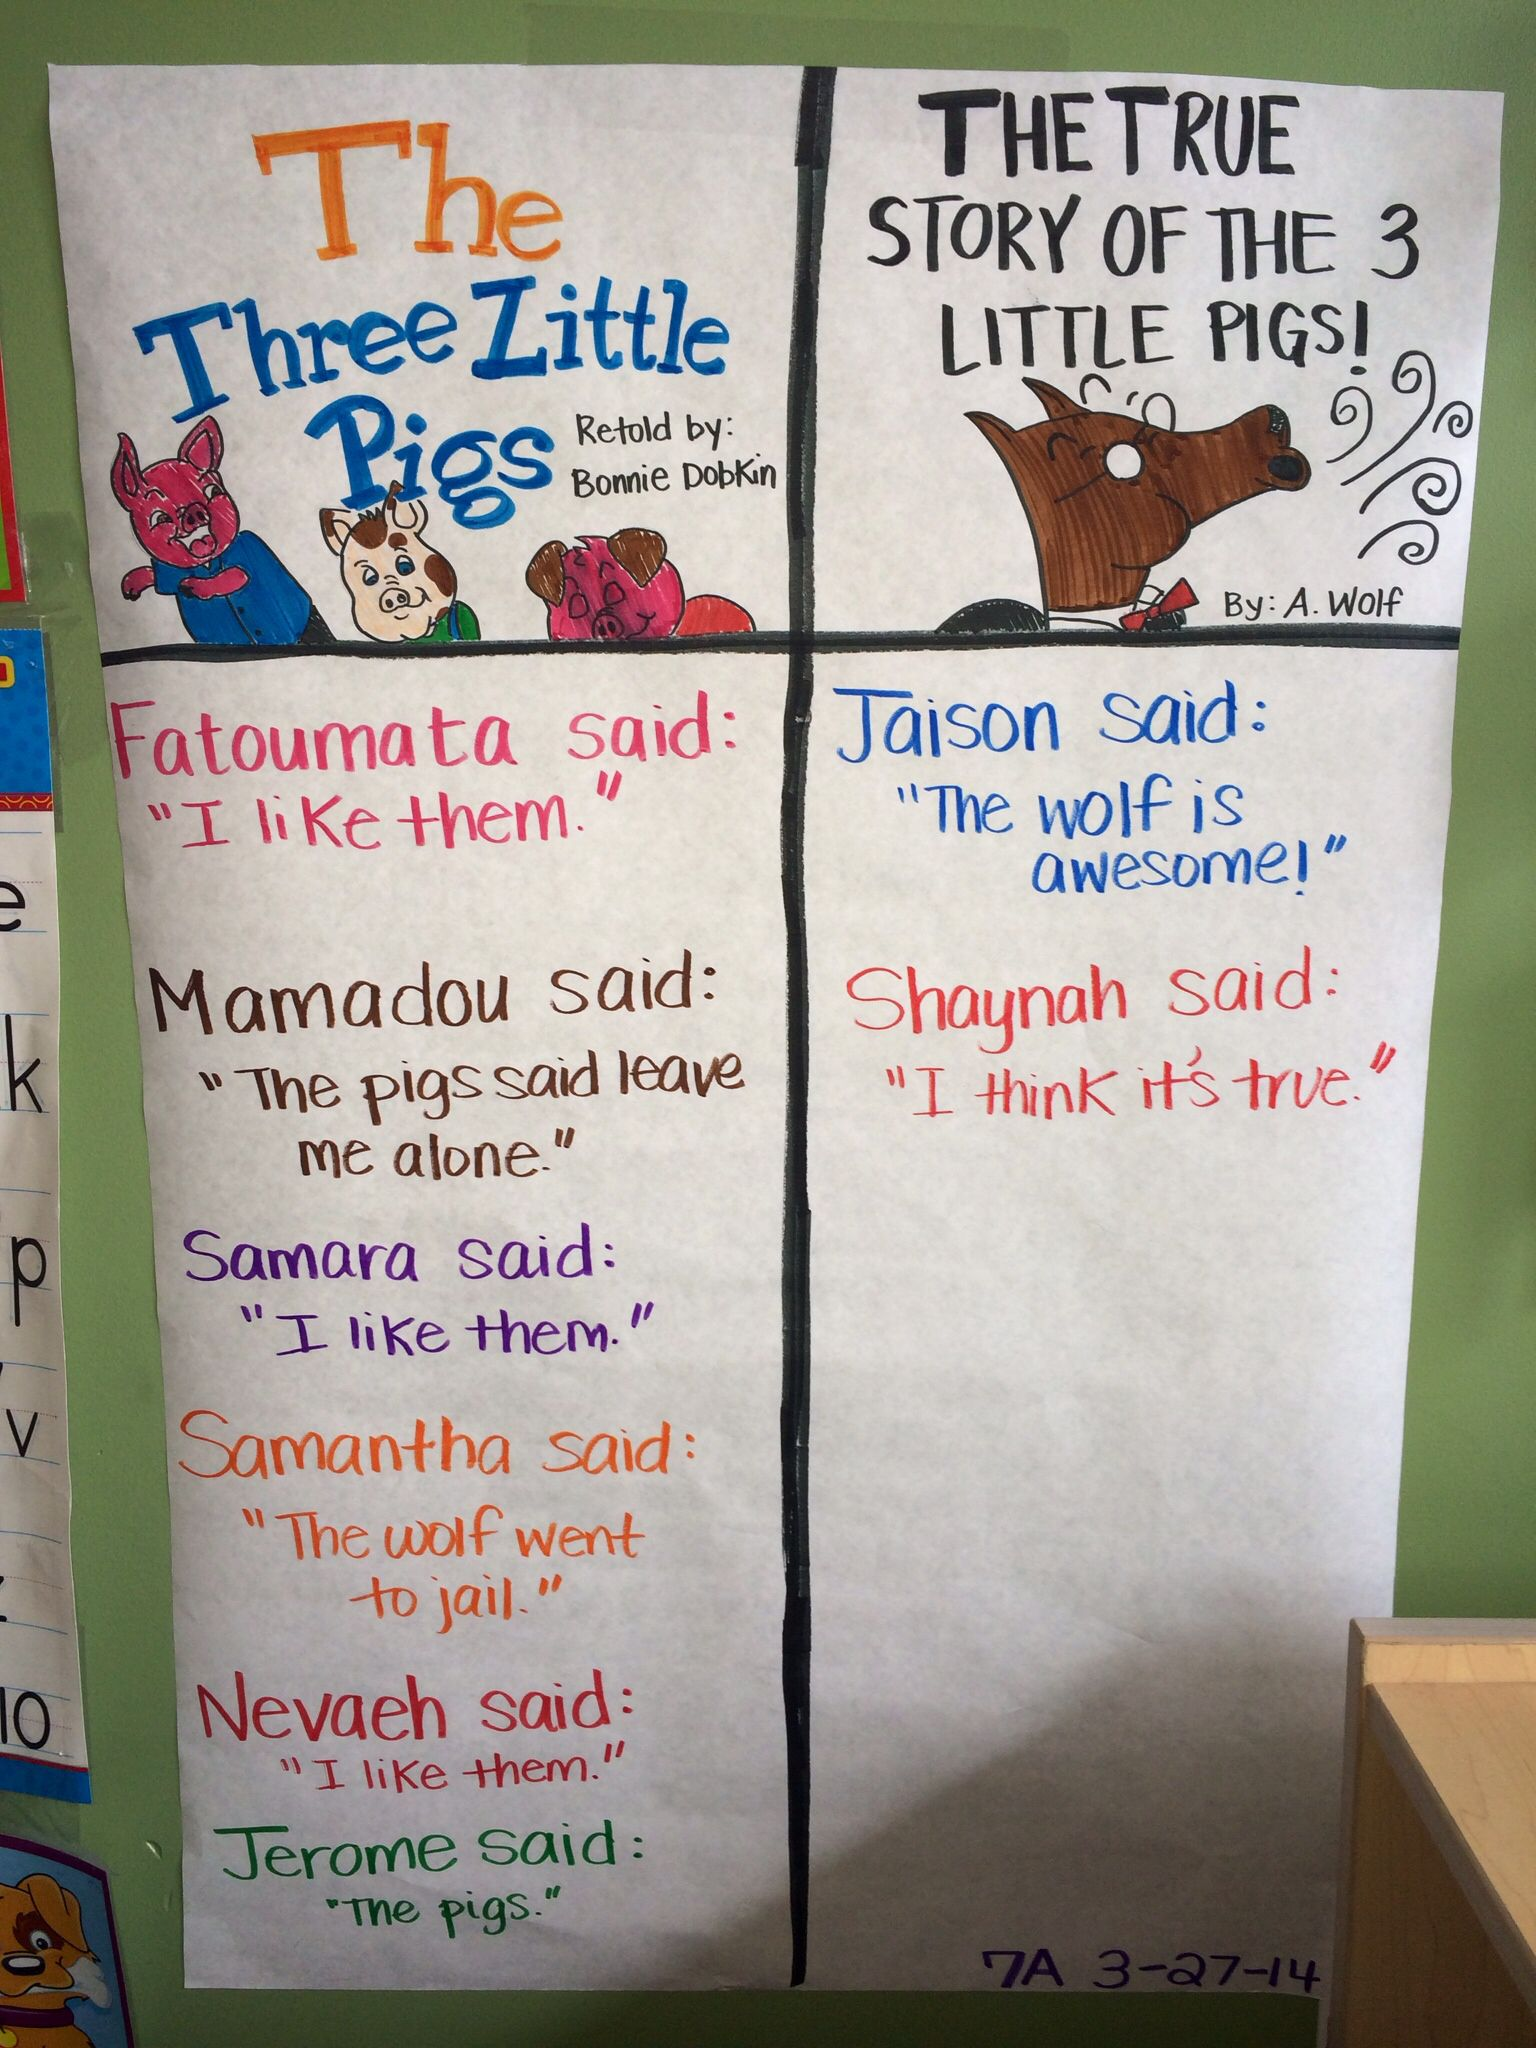 Compare And Contrast The Three Little Pigs And The True